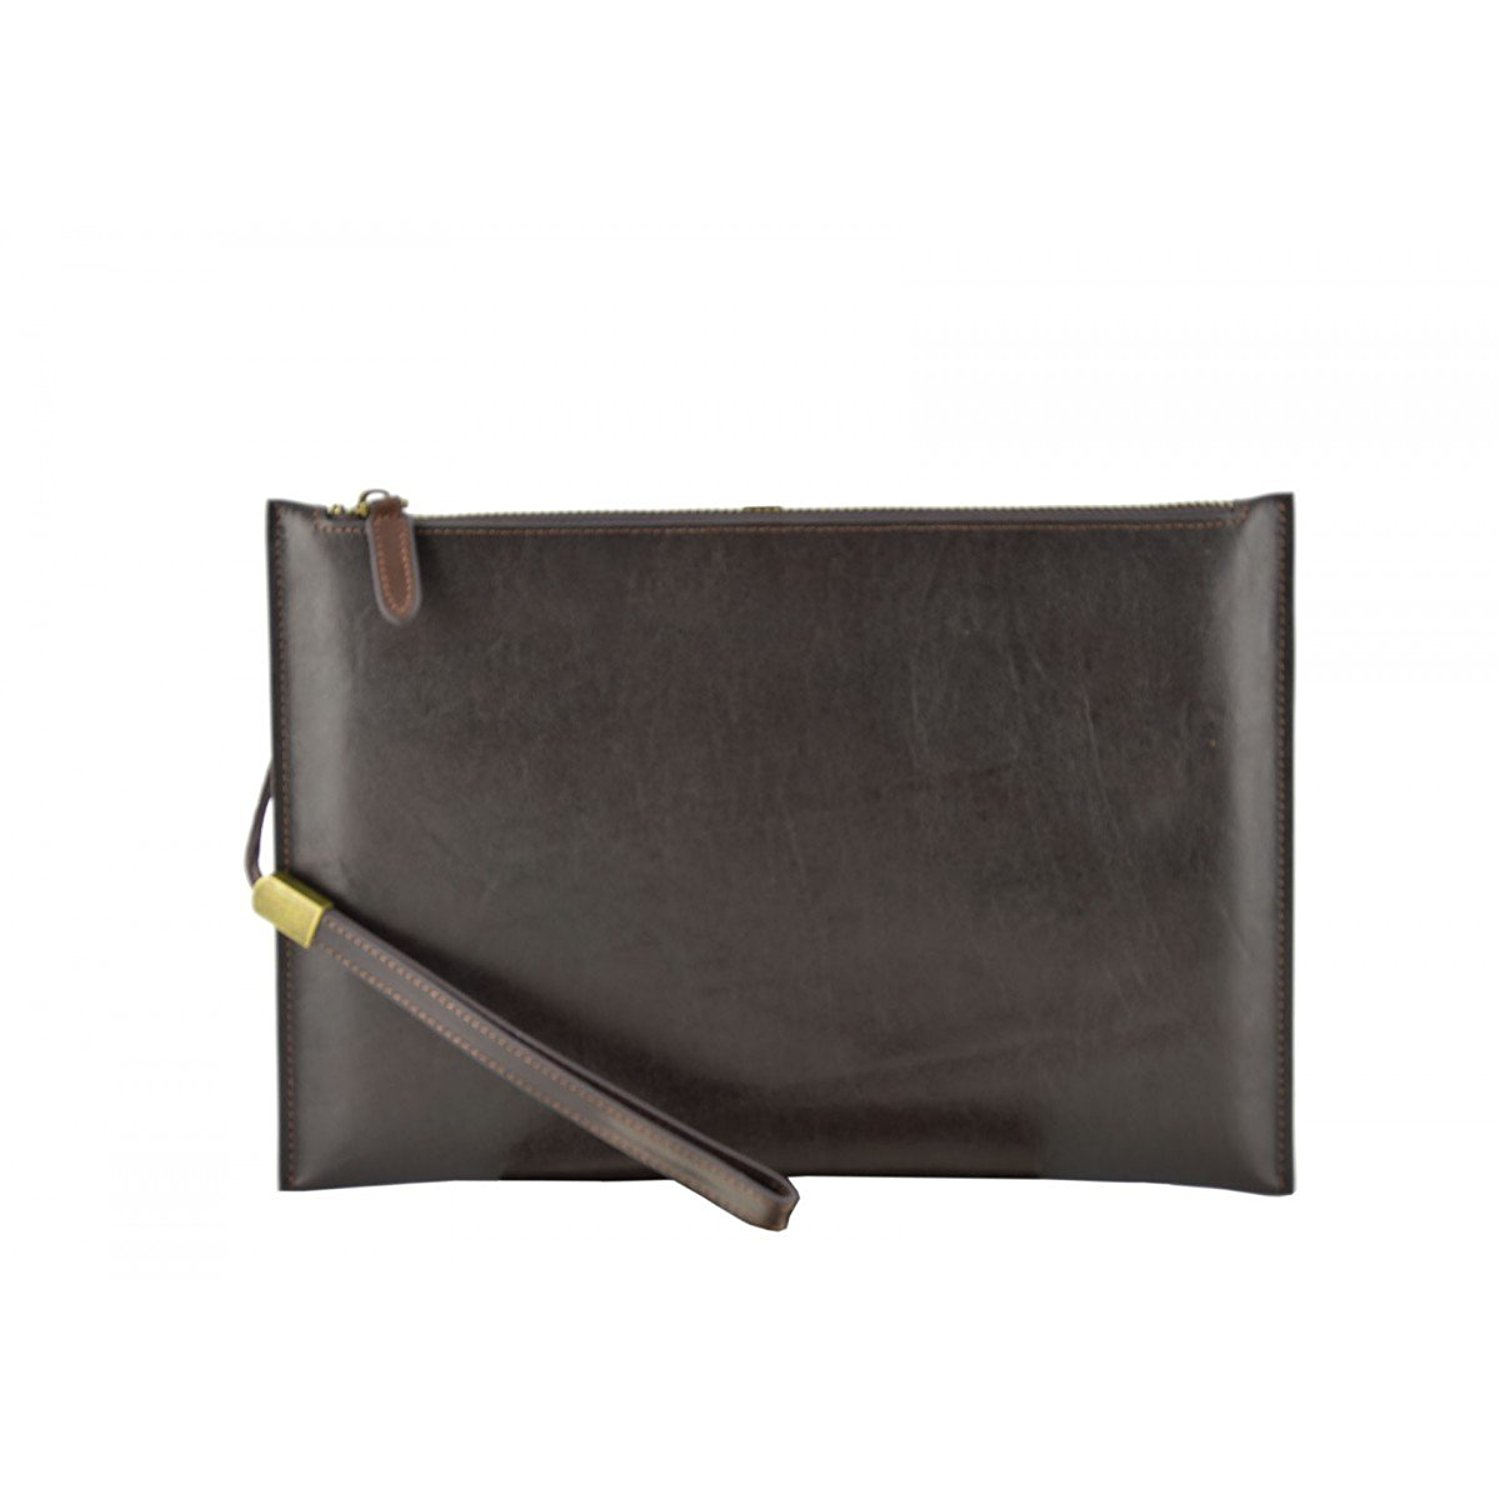 Dream Leather Bags Made in Italy Genuine Leather Genuine Leather Clutch Color Dark Brown